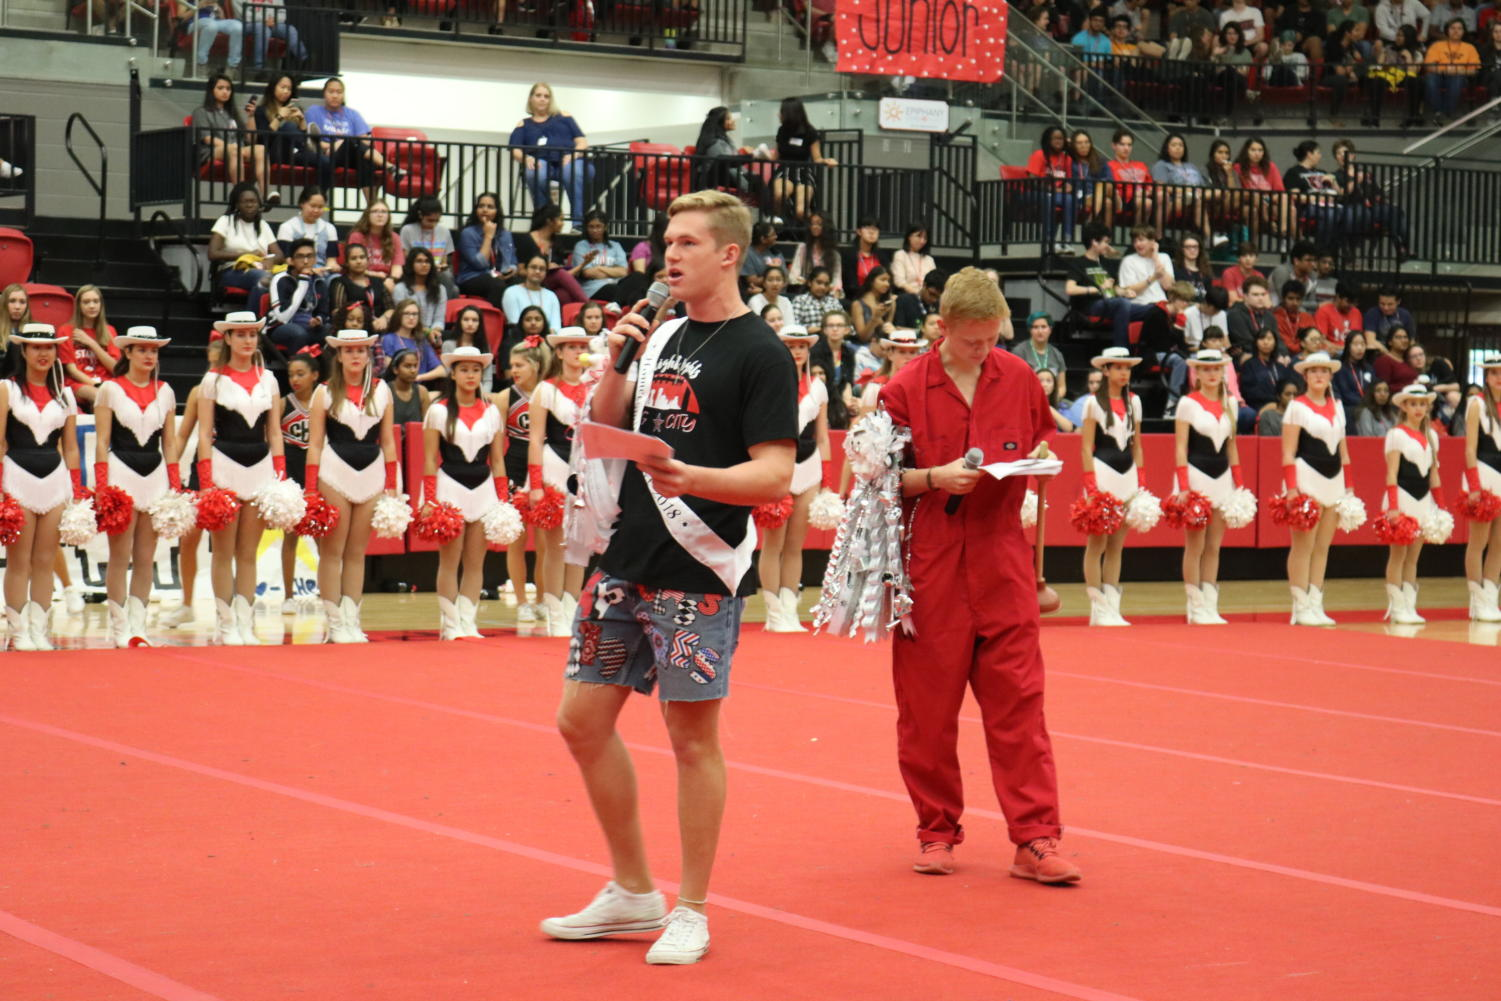 Coppell High School Senior Jay Dempsey hypes up the crowd at Friday morning's pep rally for the homecoming game and dance. While the homecoming game and dance are the most popular choices to celebrate homecoming, there are multiple ways to celebrate homecoming.